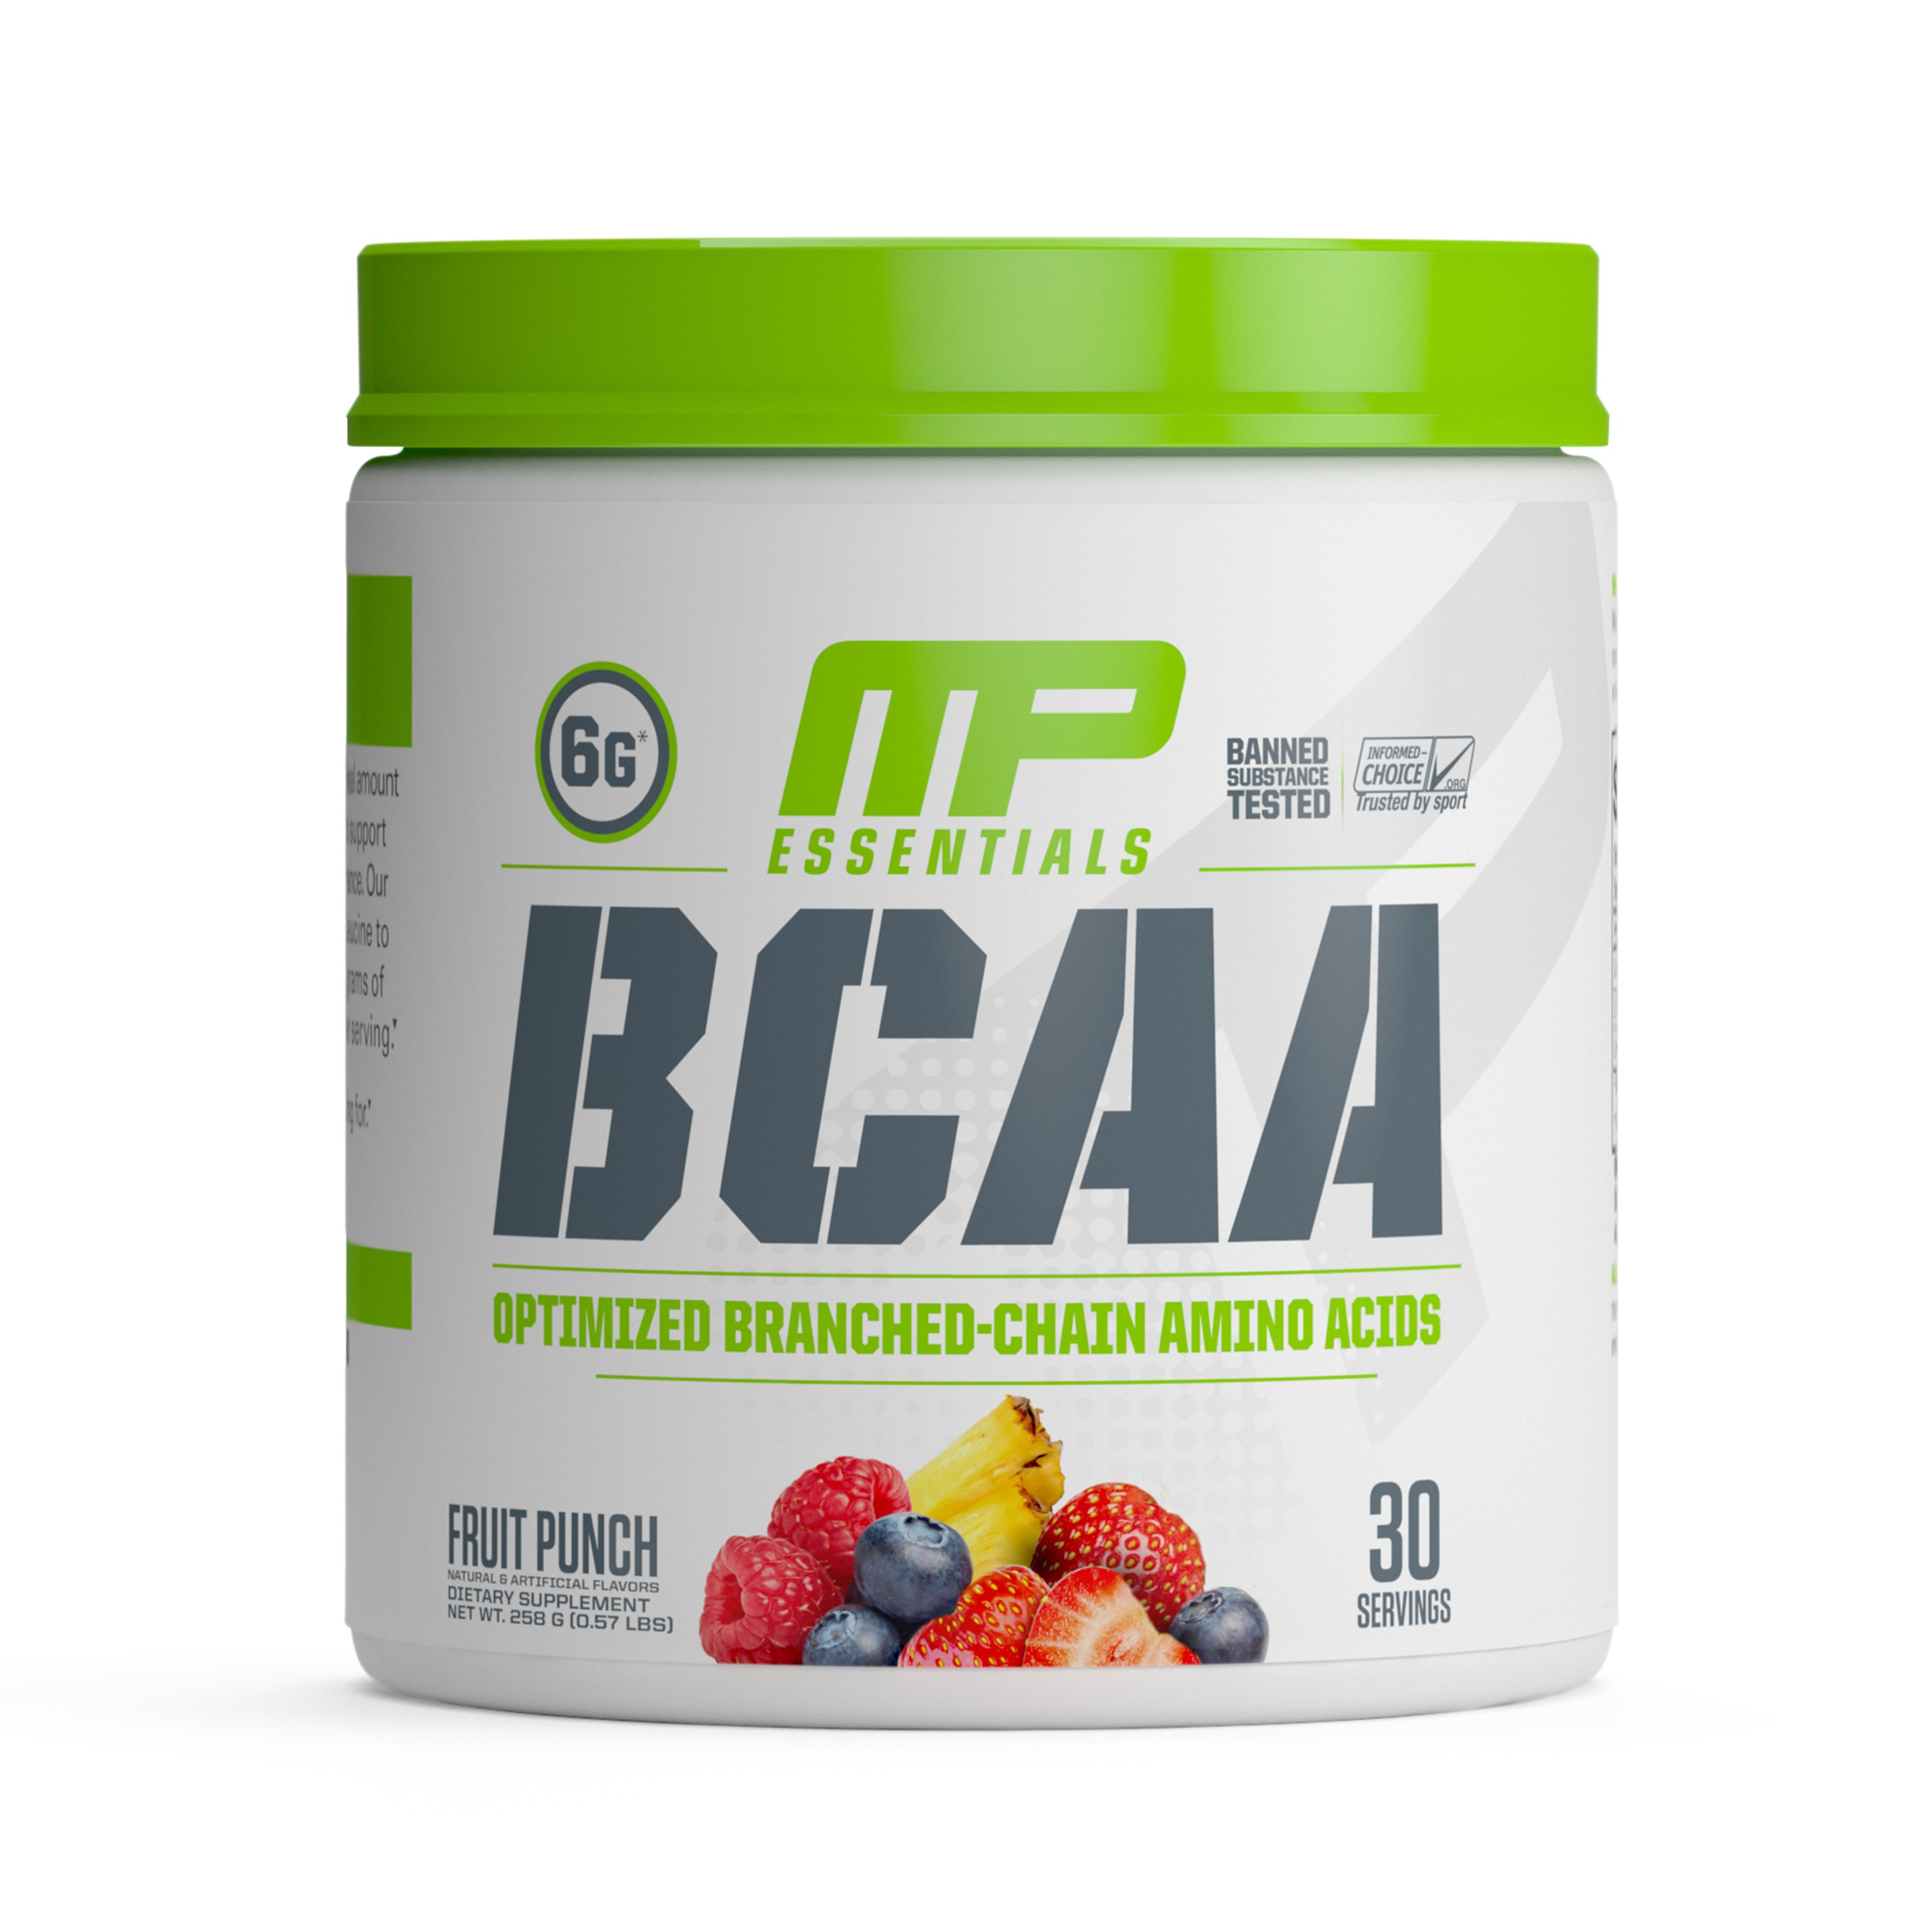 Musclepharm 에센셜 BCAA, 30회, 프루트 펀치(Fruit Punch)